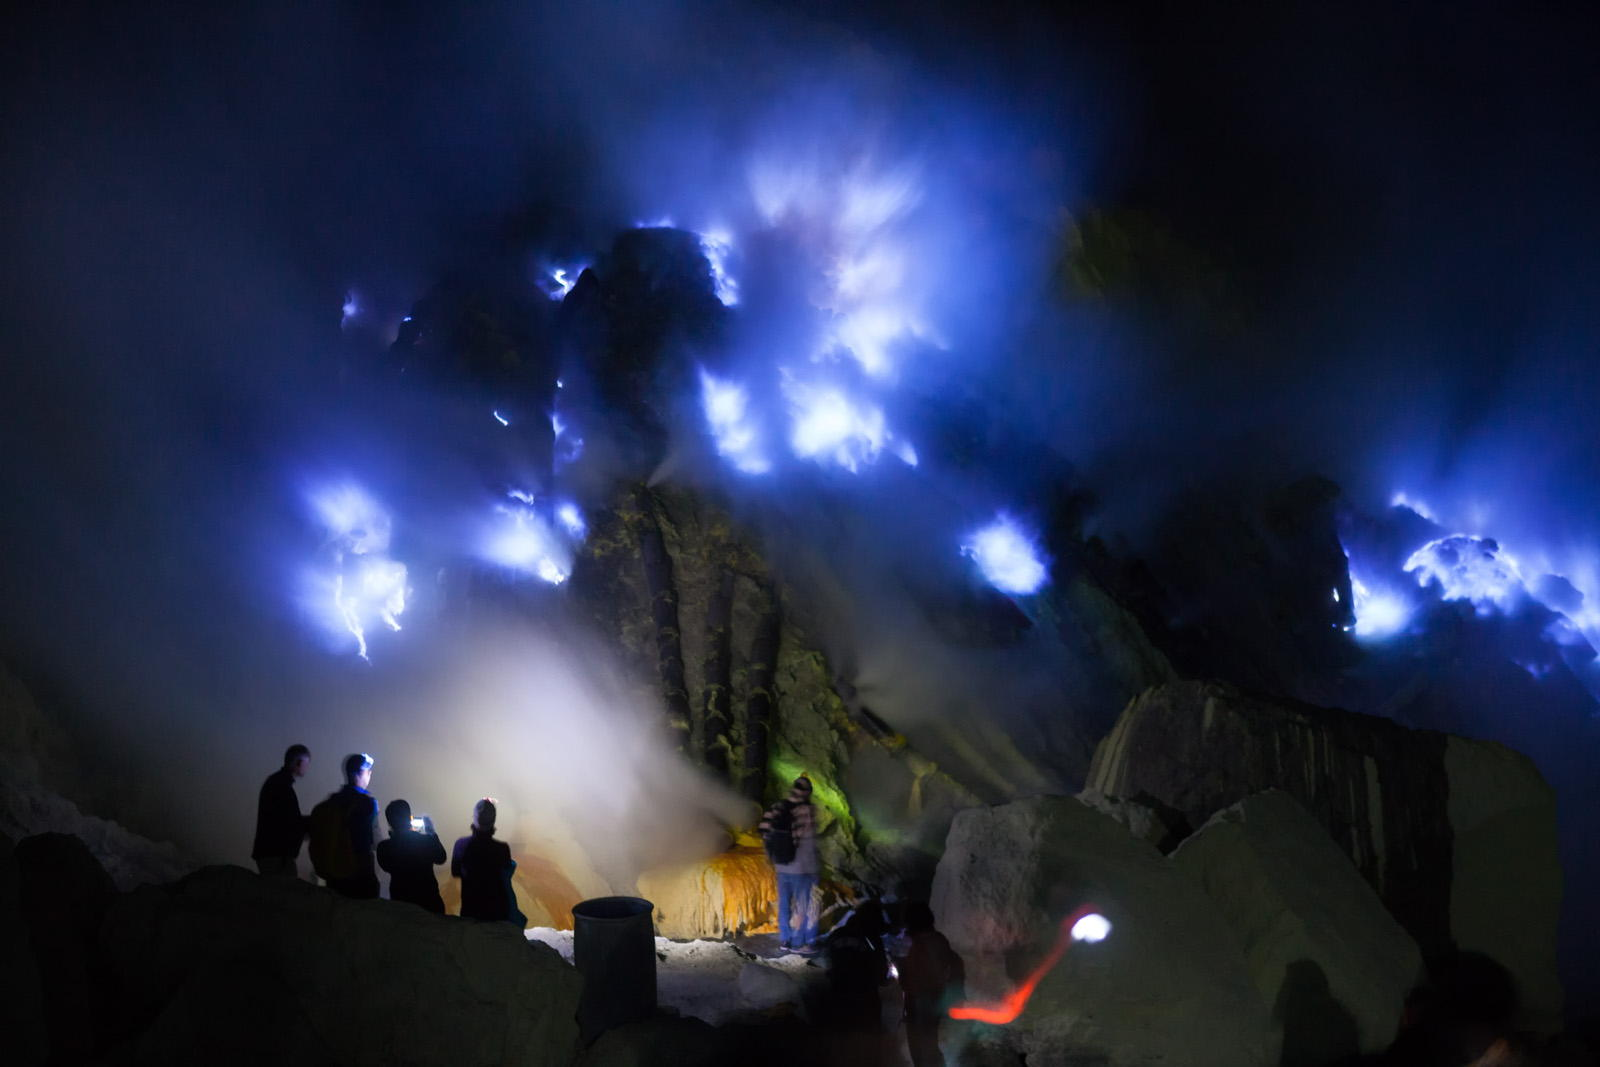 Silhouette of tourists looking into the blue fire a flow of liquid sulfur which has caught fire and burns with an blue flame. Cater of the Kawah Ijen volcano, Java, Indonesia.